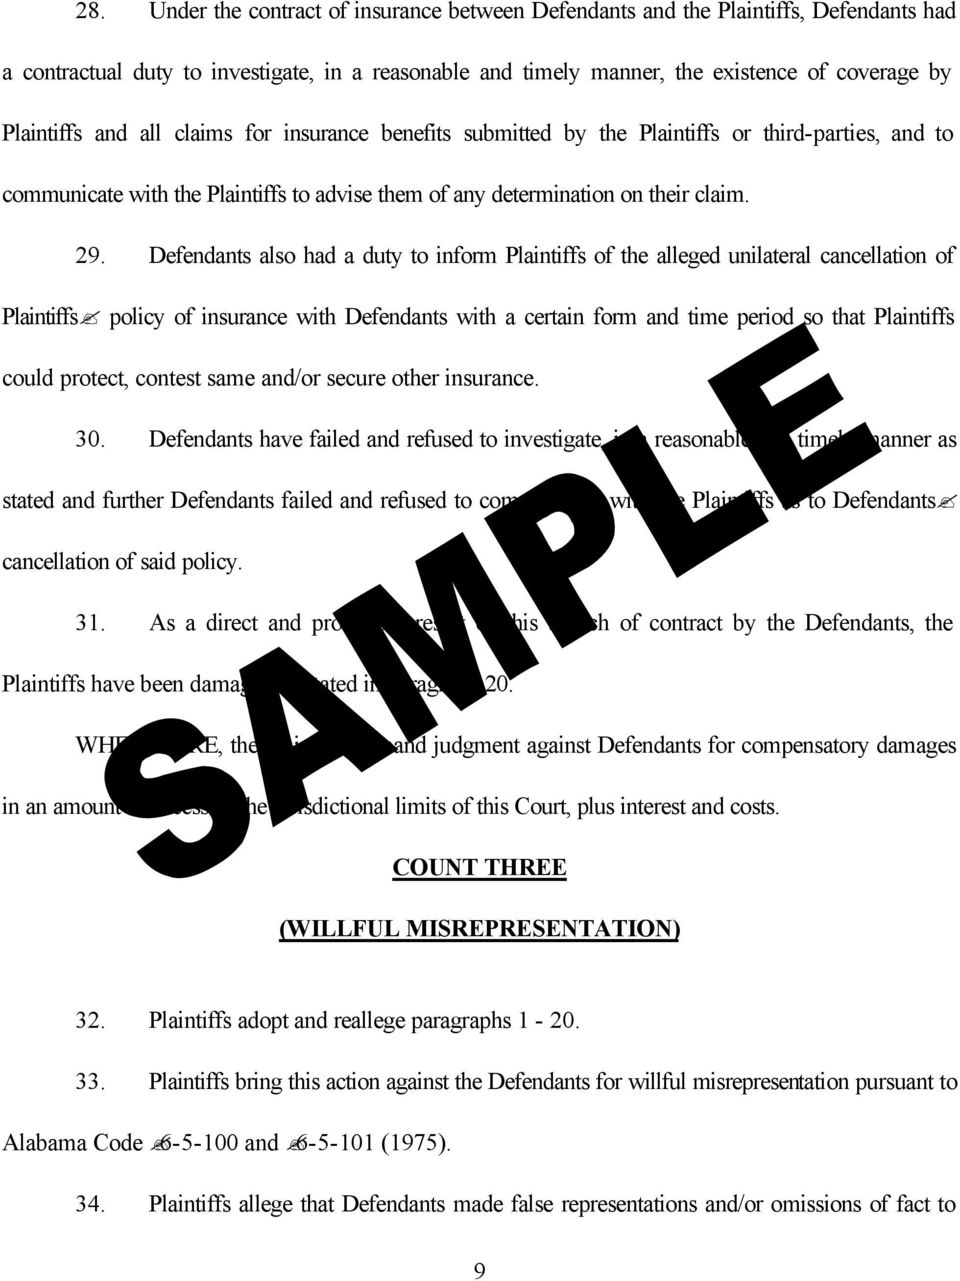 Defendants also had a duty to inform Plaintiffs of the alleged unilateral cancellation of Plaintiffs policy of insurance with Defendants with a certain form and time period so that Plaintiffs could